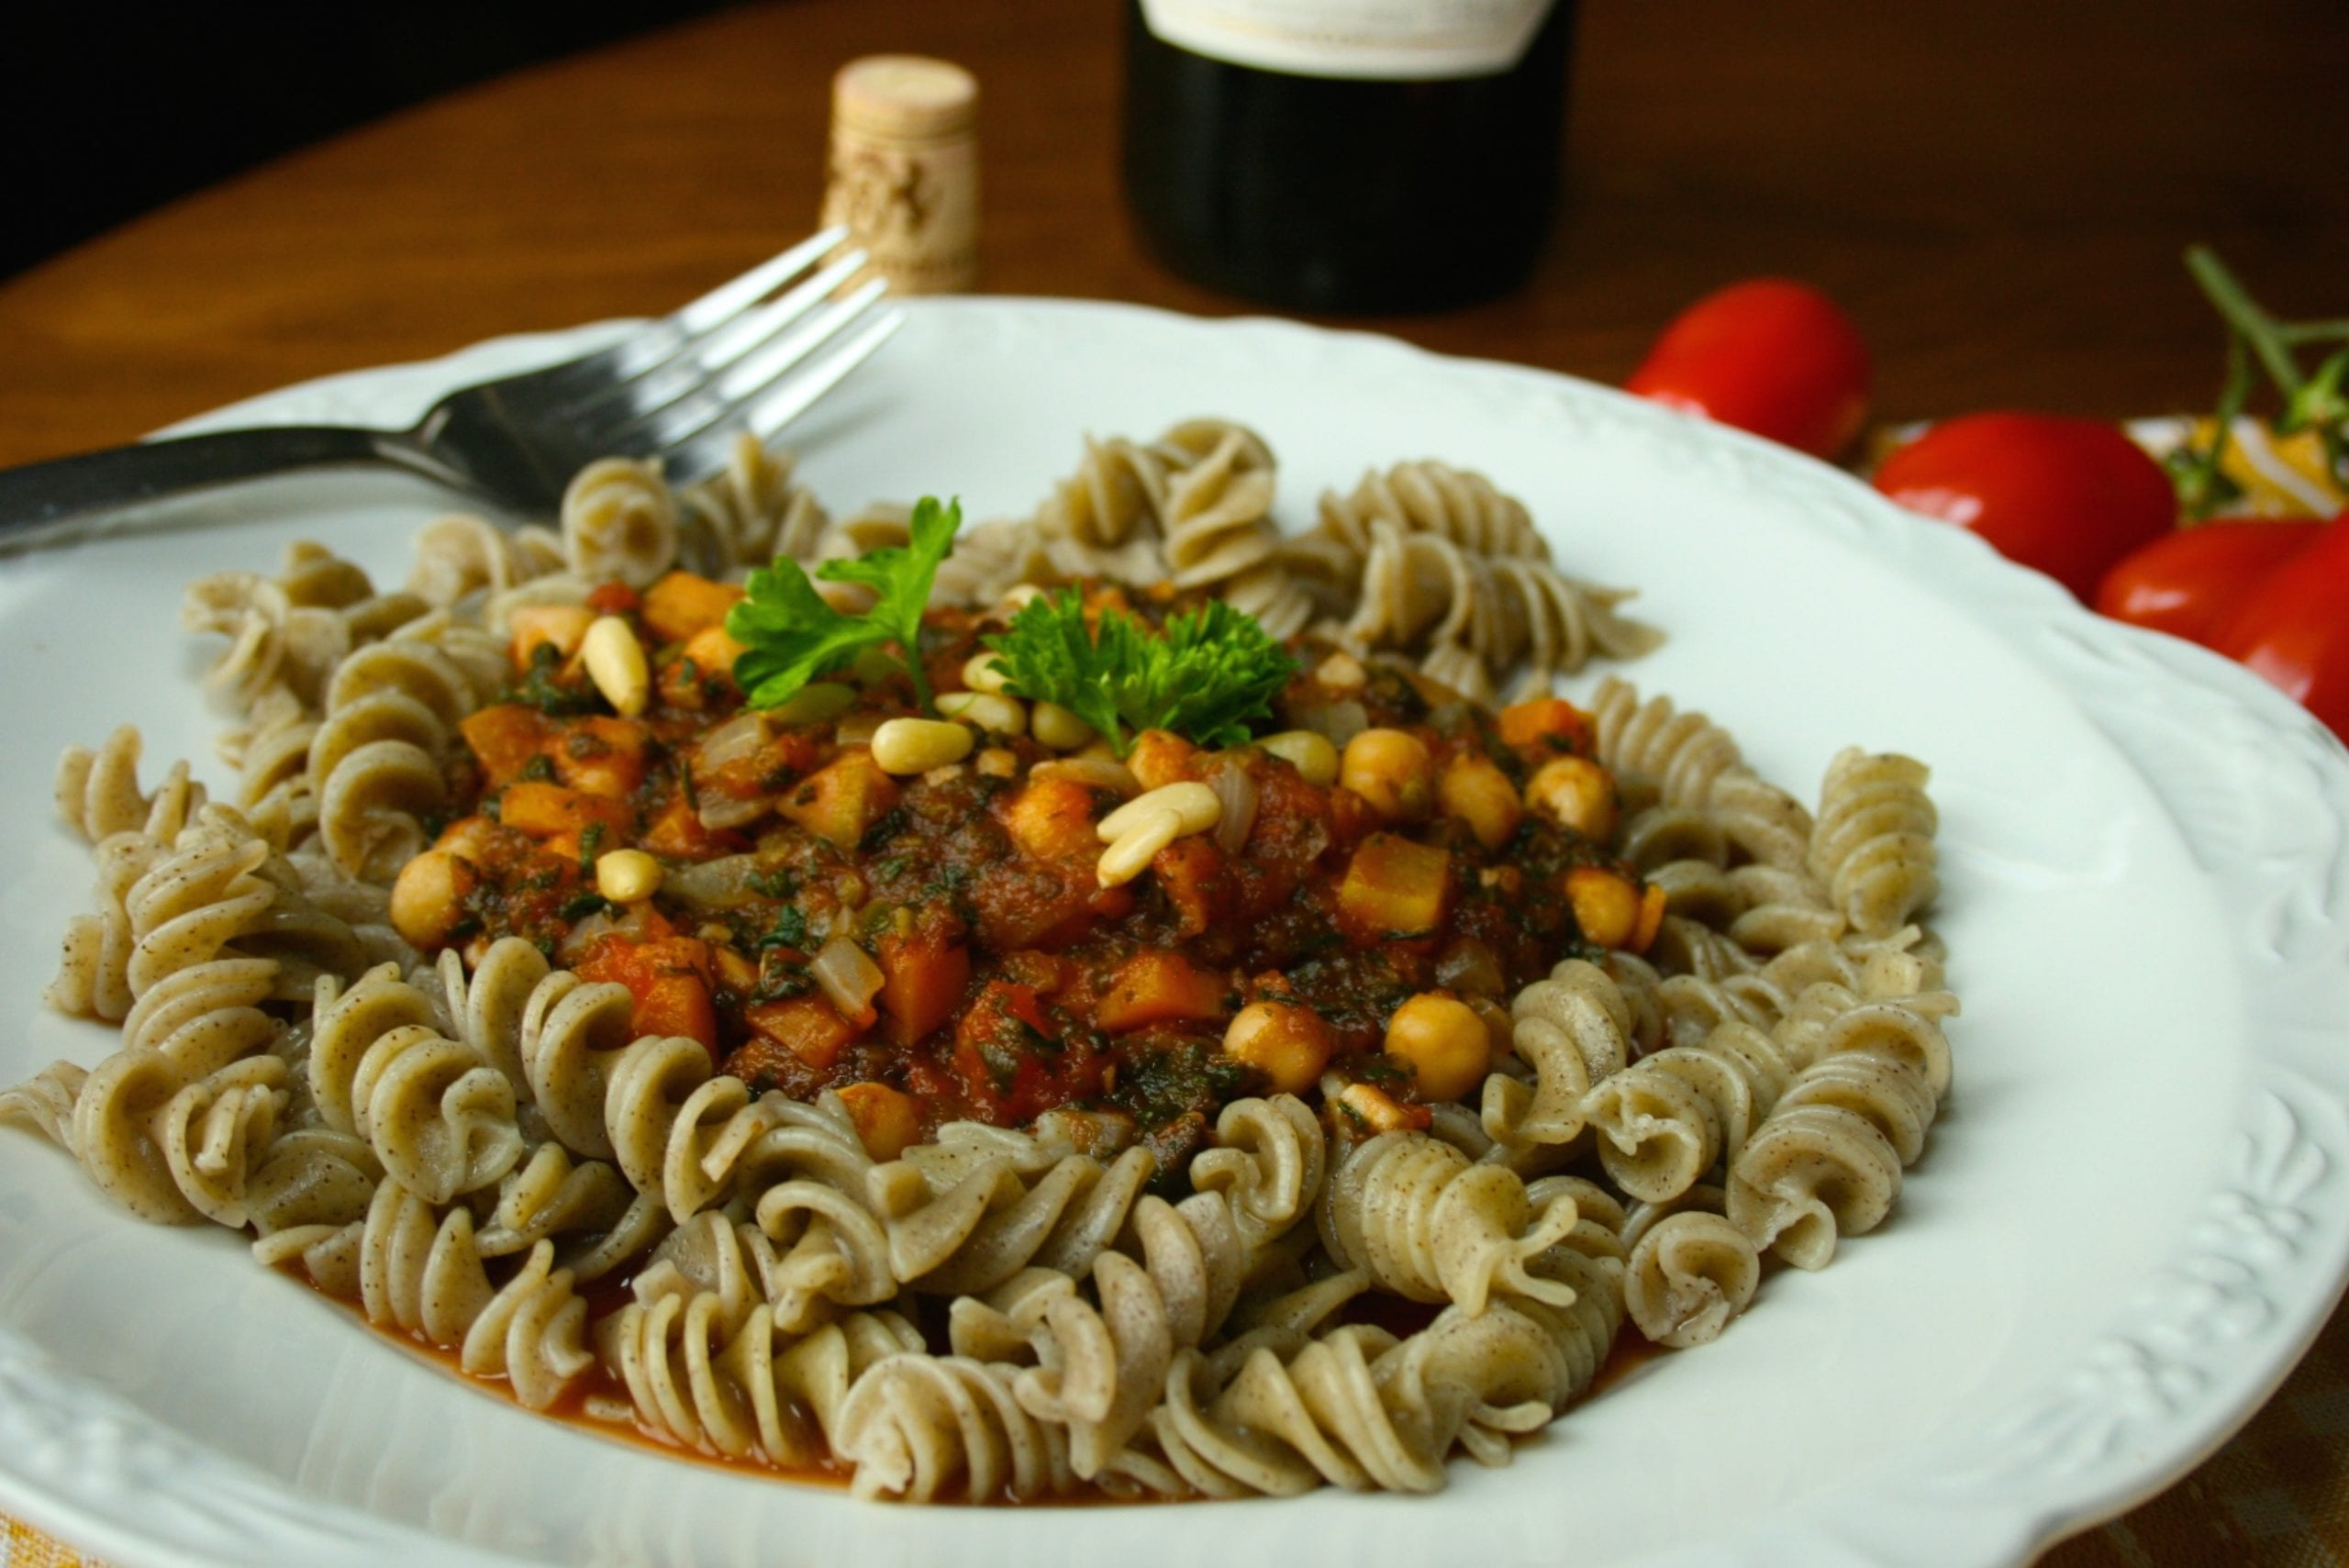 Spinach Tomato Pasta with Chickpeas